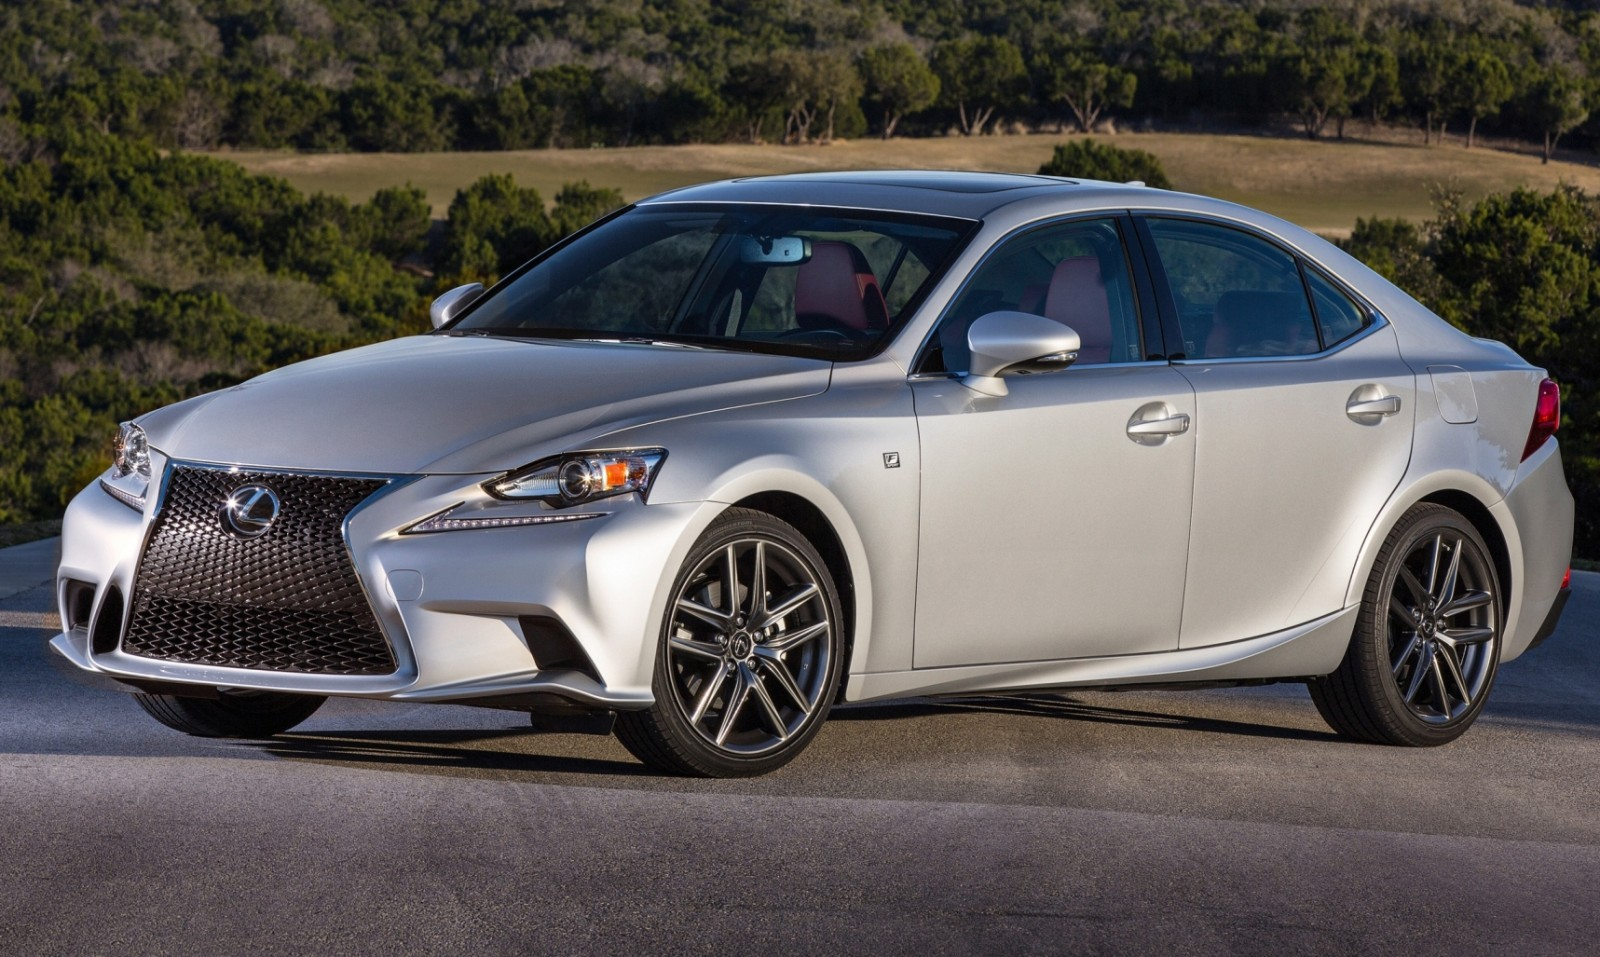 2014_Lexus_IS_350_F_SPORT_024